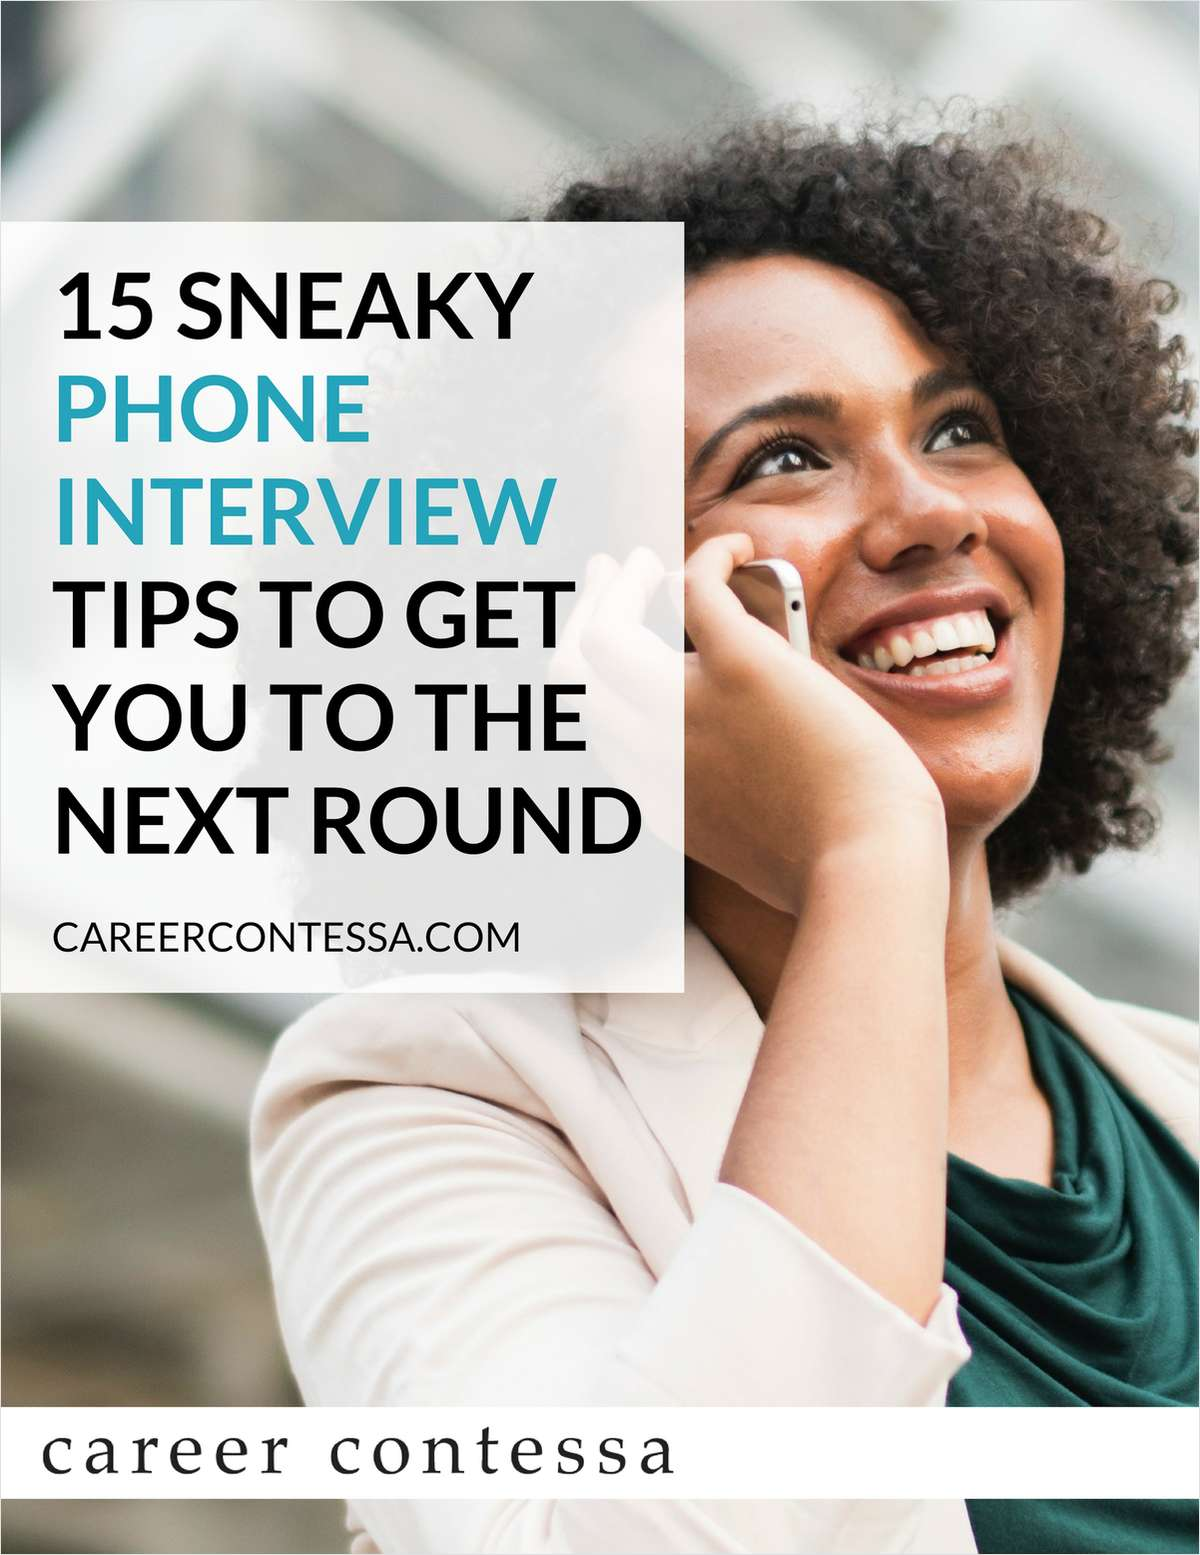 15 Sneaky Phone Interview Tips to Get You to the Next Round